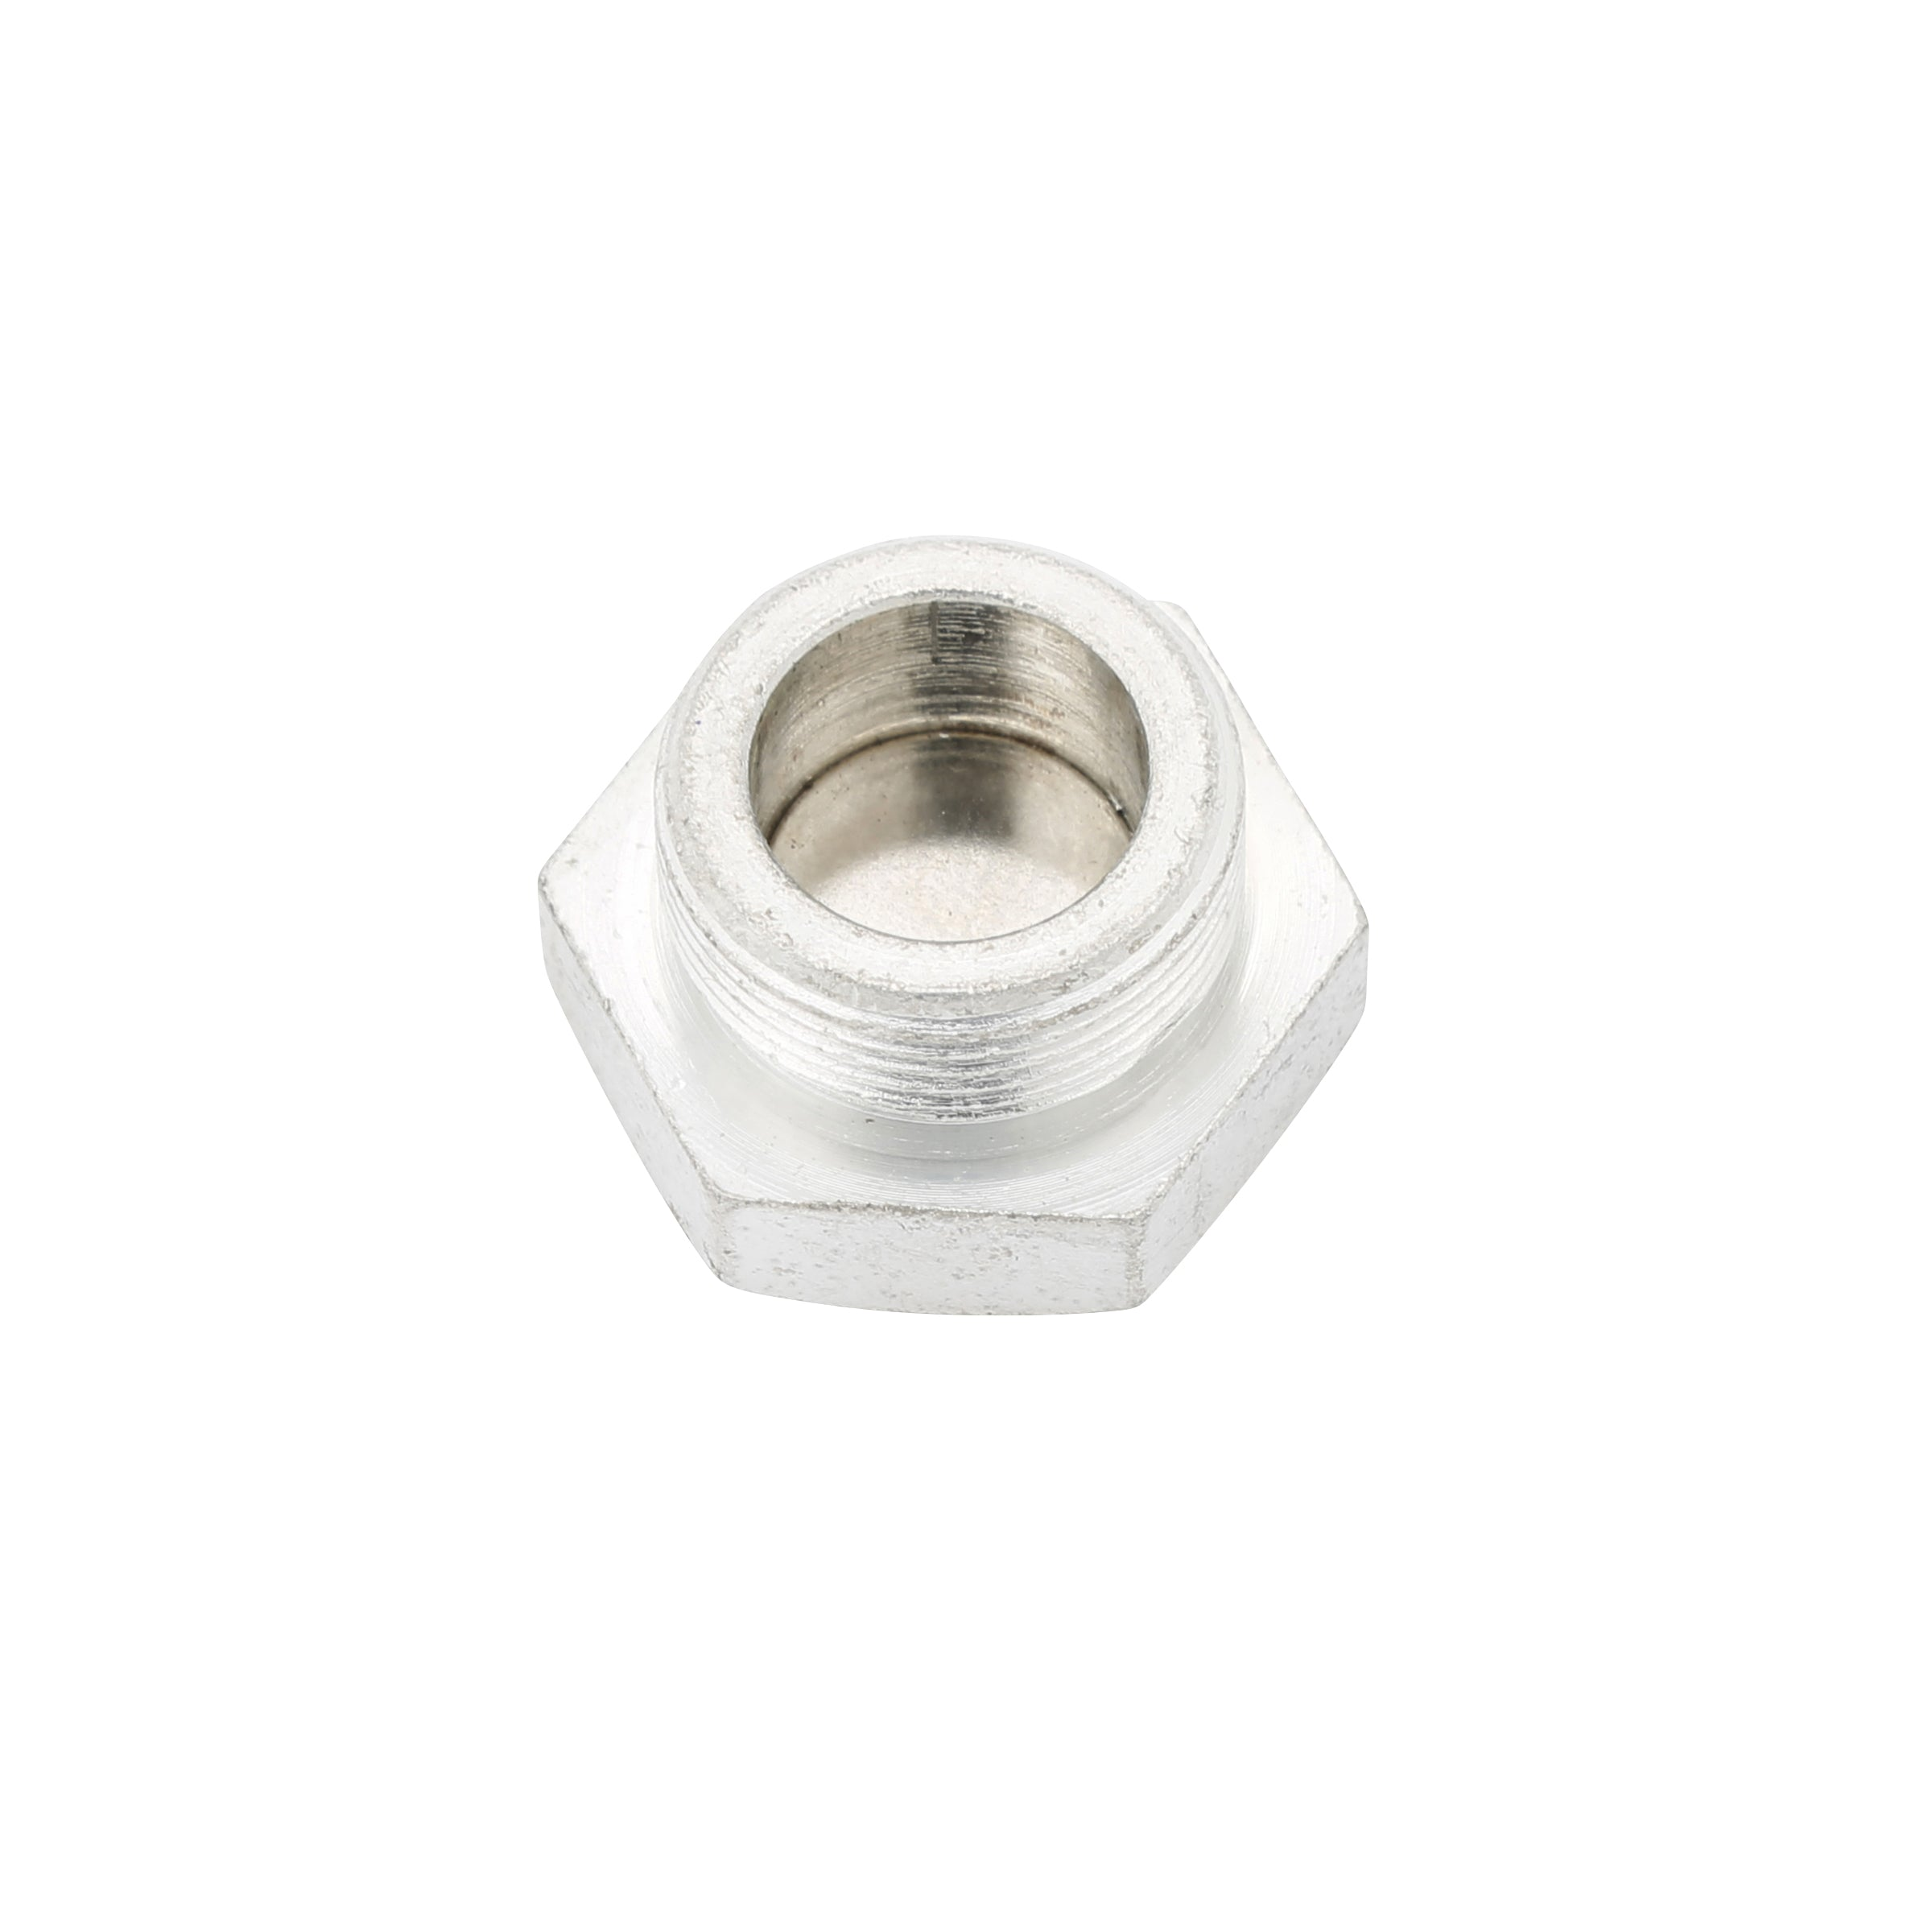 "Oil Pan Drain Plug (3/4"" Magnetic) • 1932-38 Ford"